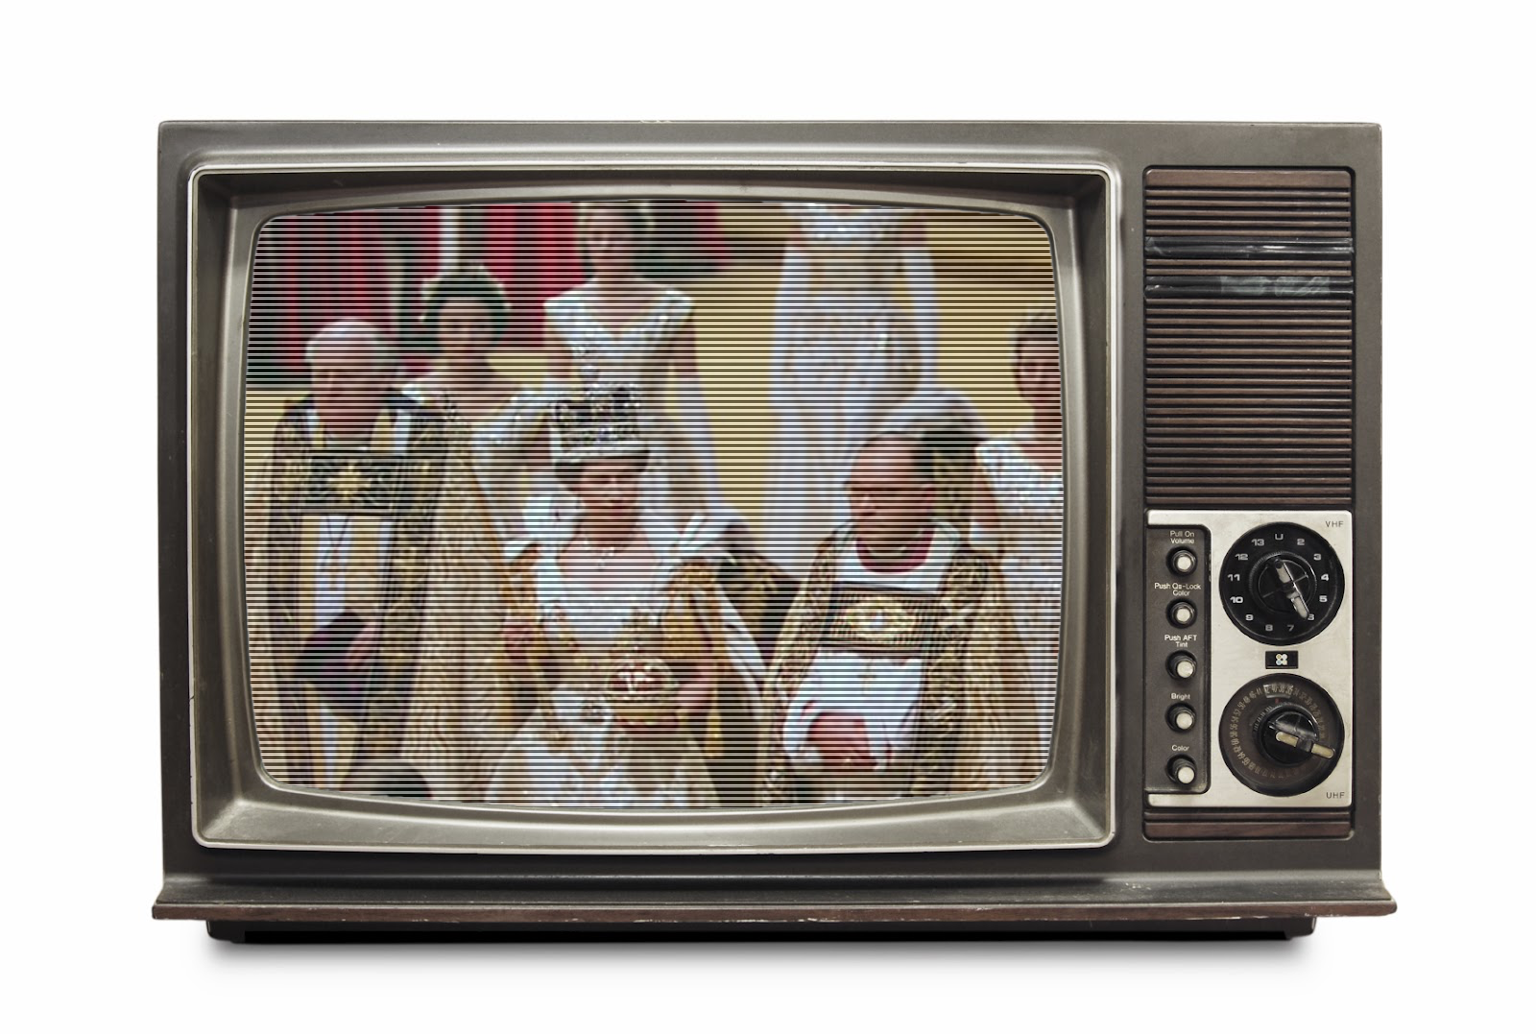 Group of TV + Queen + Pattern Fill